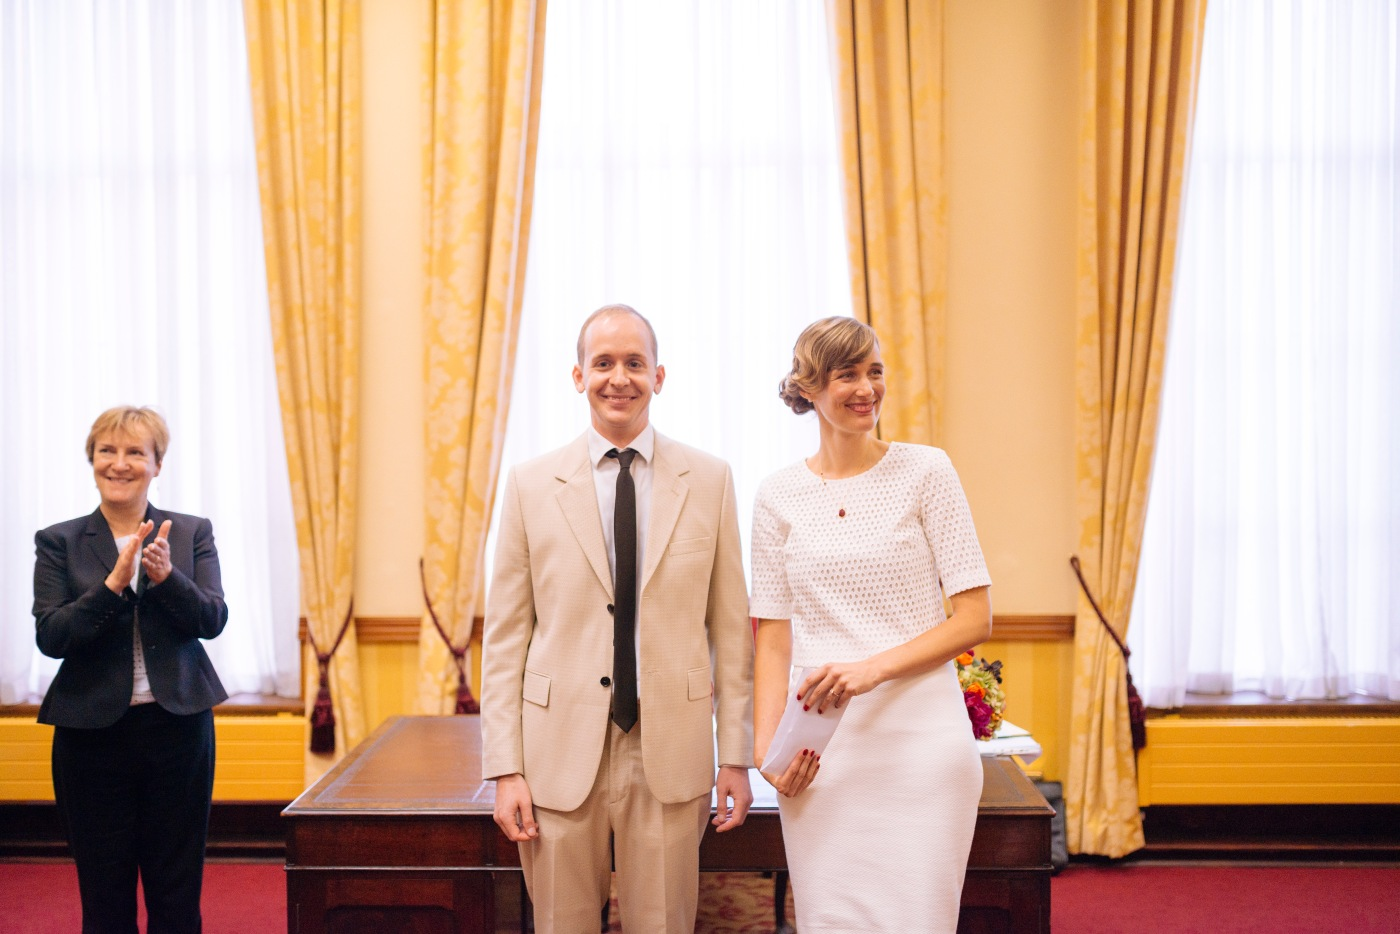 Brenda + Nick's wedding at Islington Town Hall, London